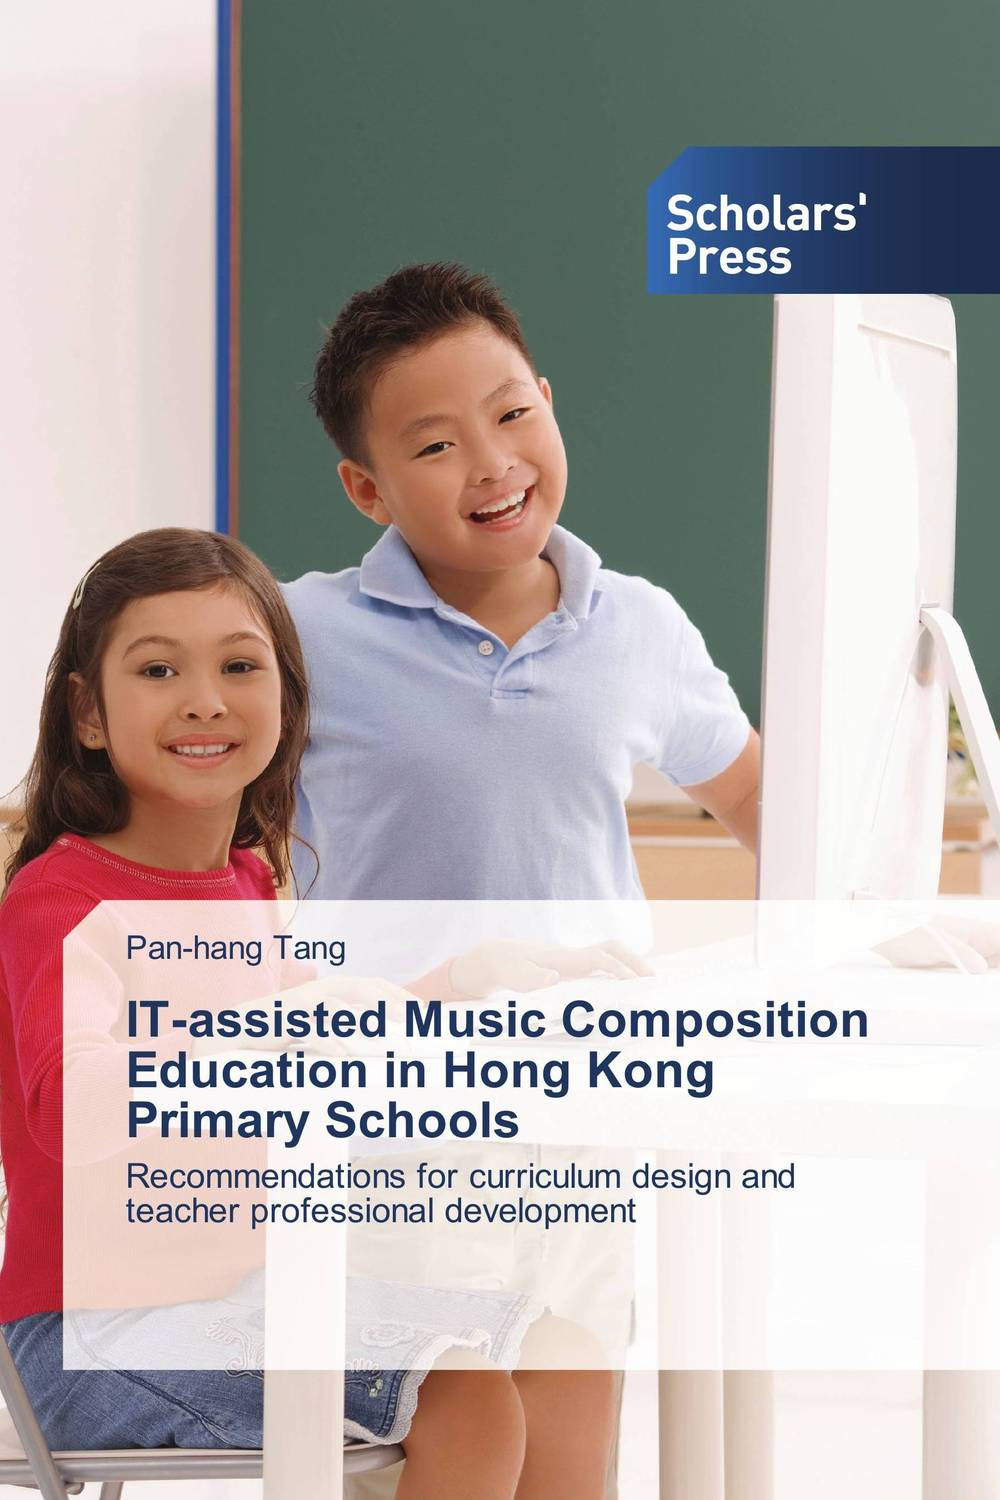 IT-assisted Music Composition Education in Hong Kong Primary Schools